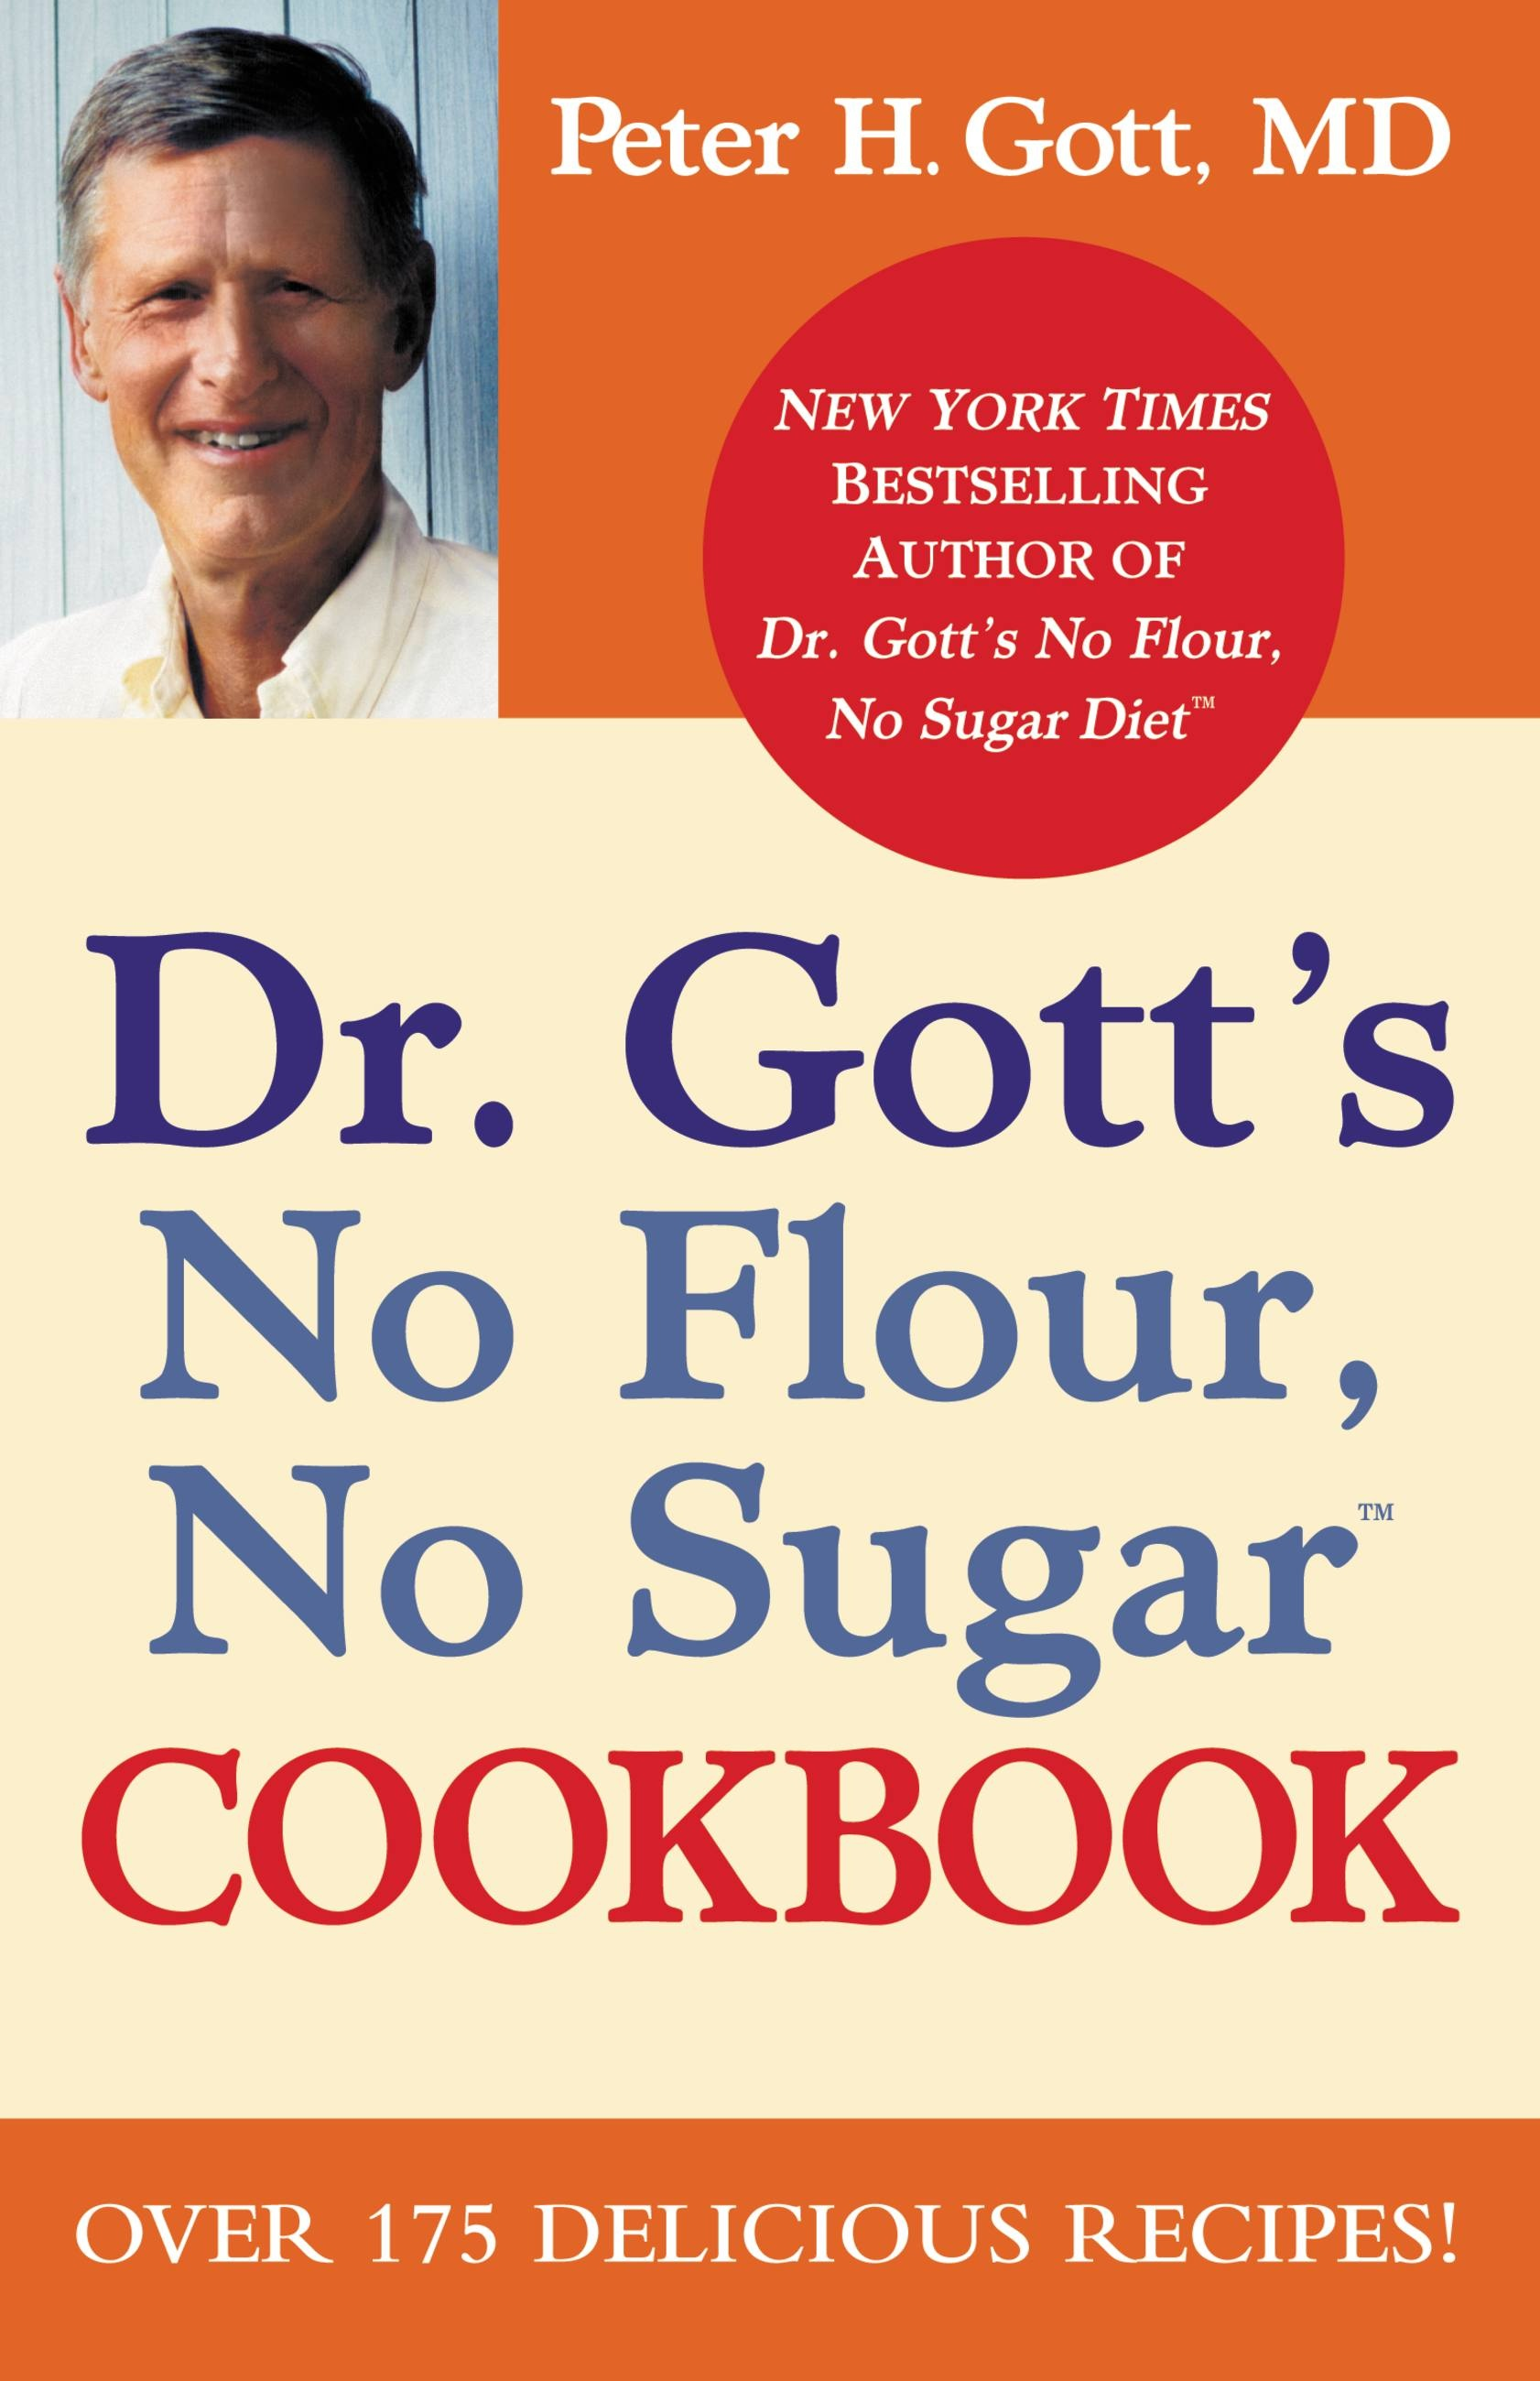 Dr. Gott's No Flour, No Sugar(TM) Cookbook